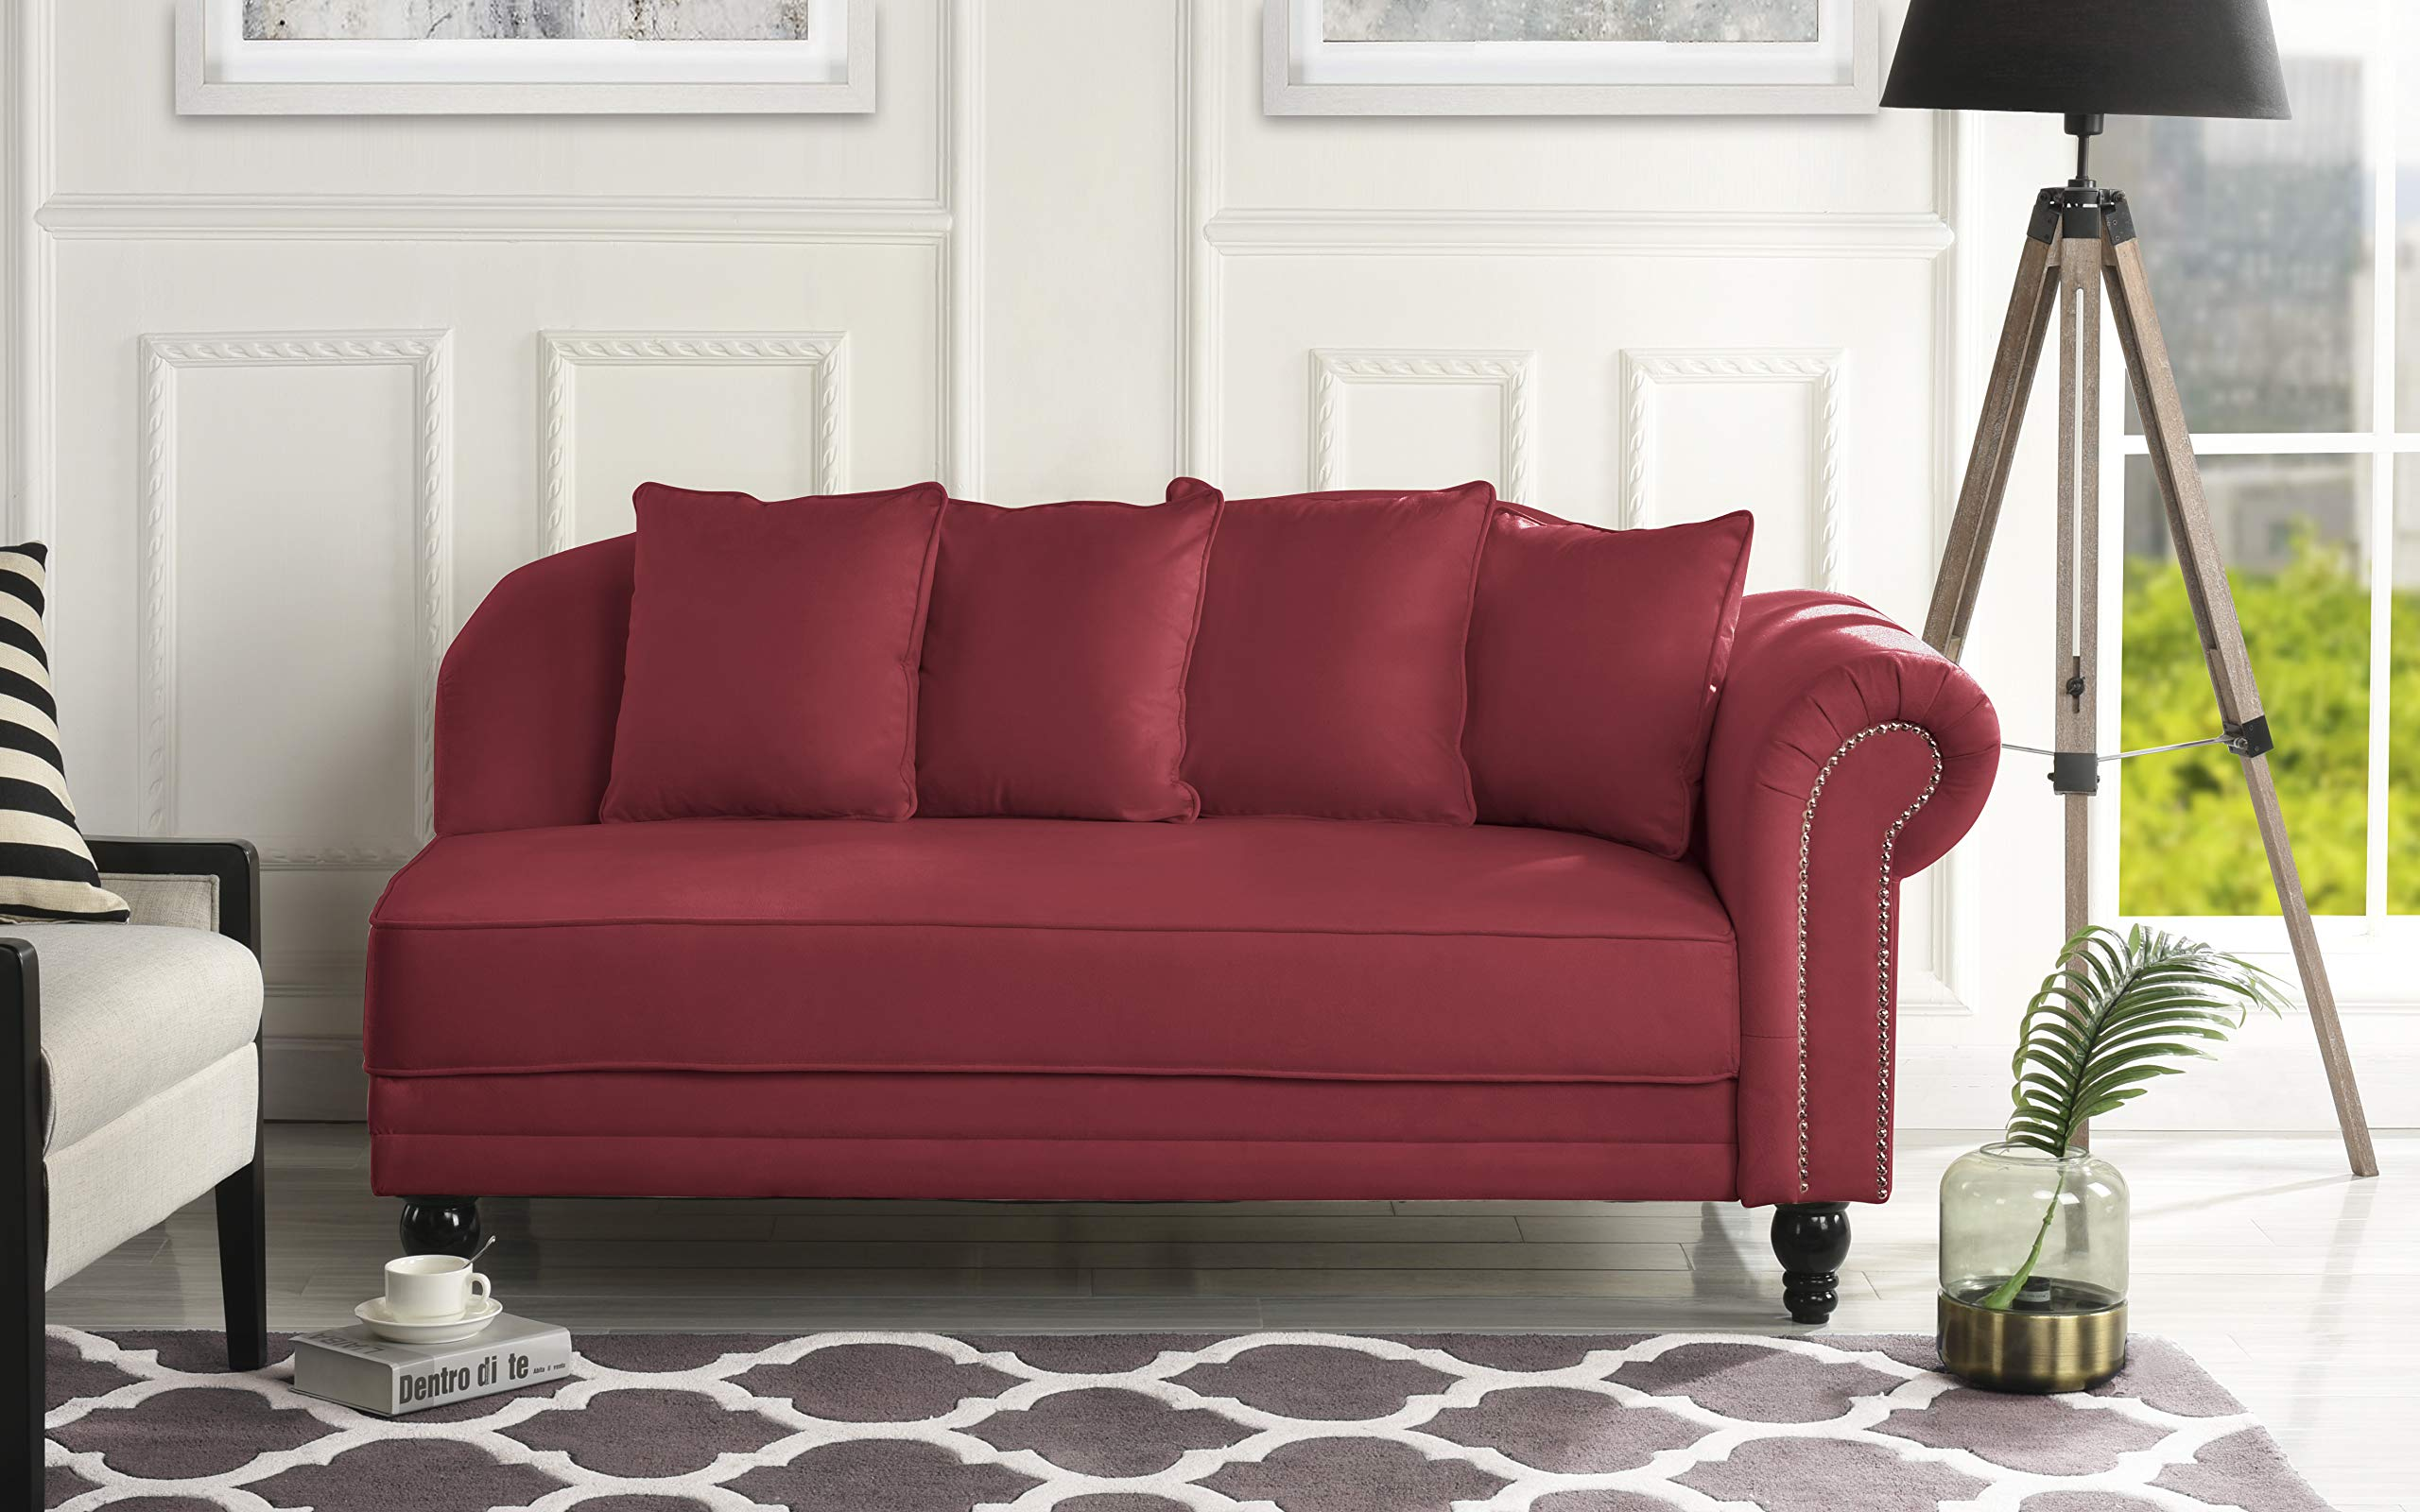 Sofamania Large Classic Velvet Fabric Living Room Chaise Lounge with Nailhead Trim (Rose Red) by Sofamania